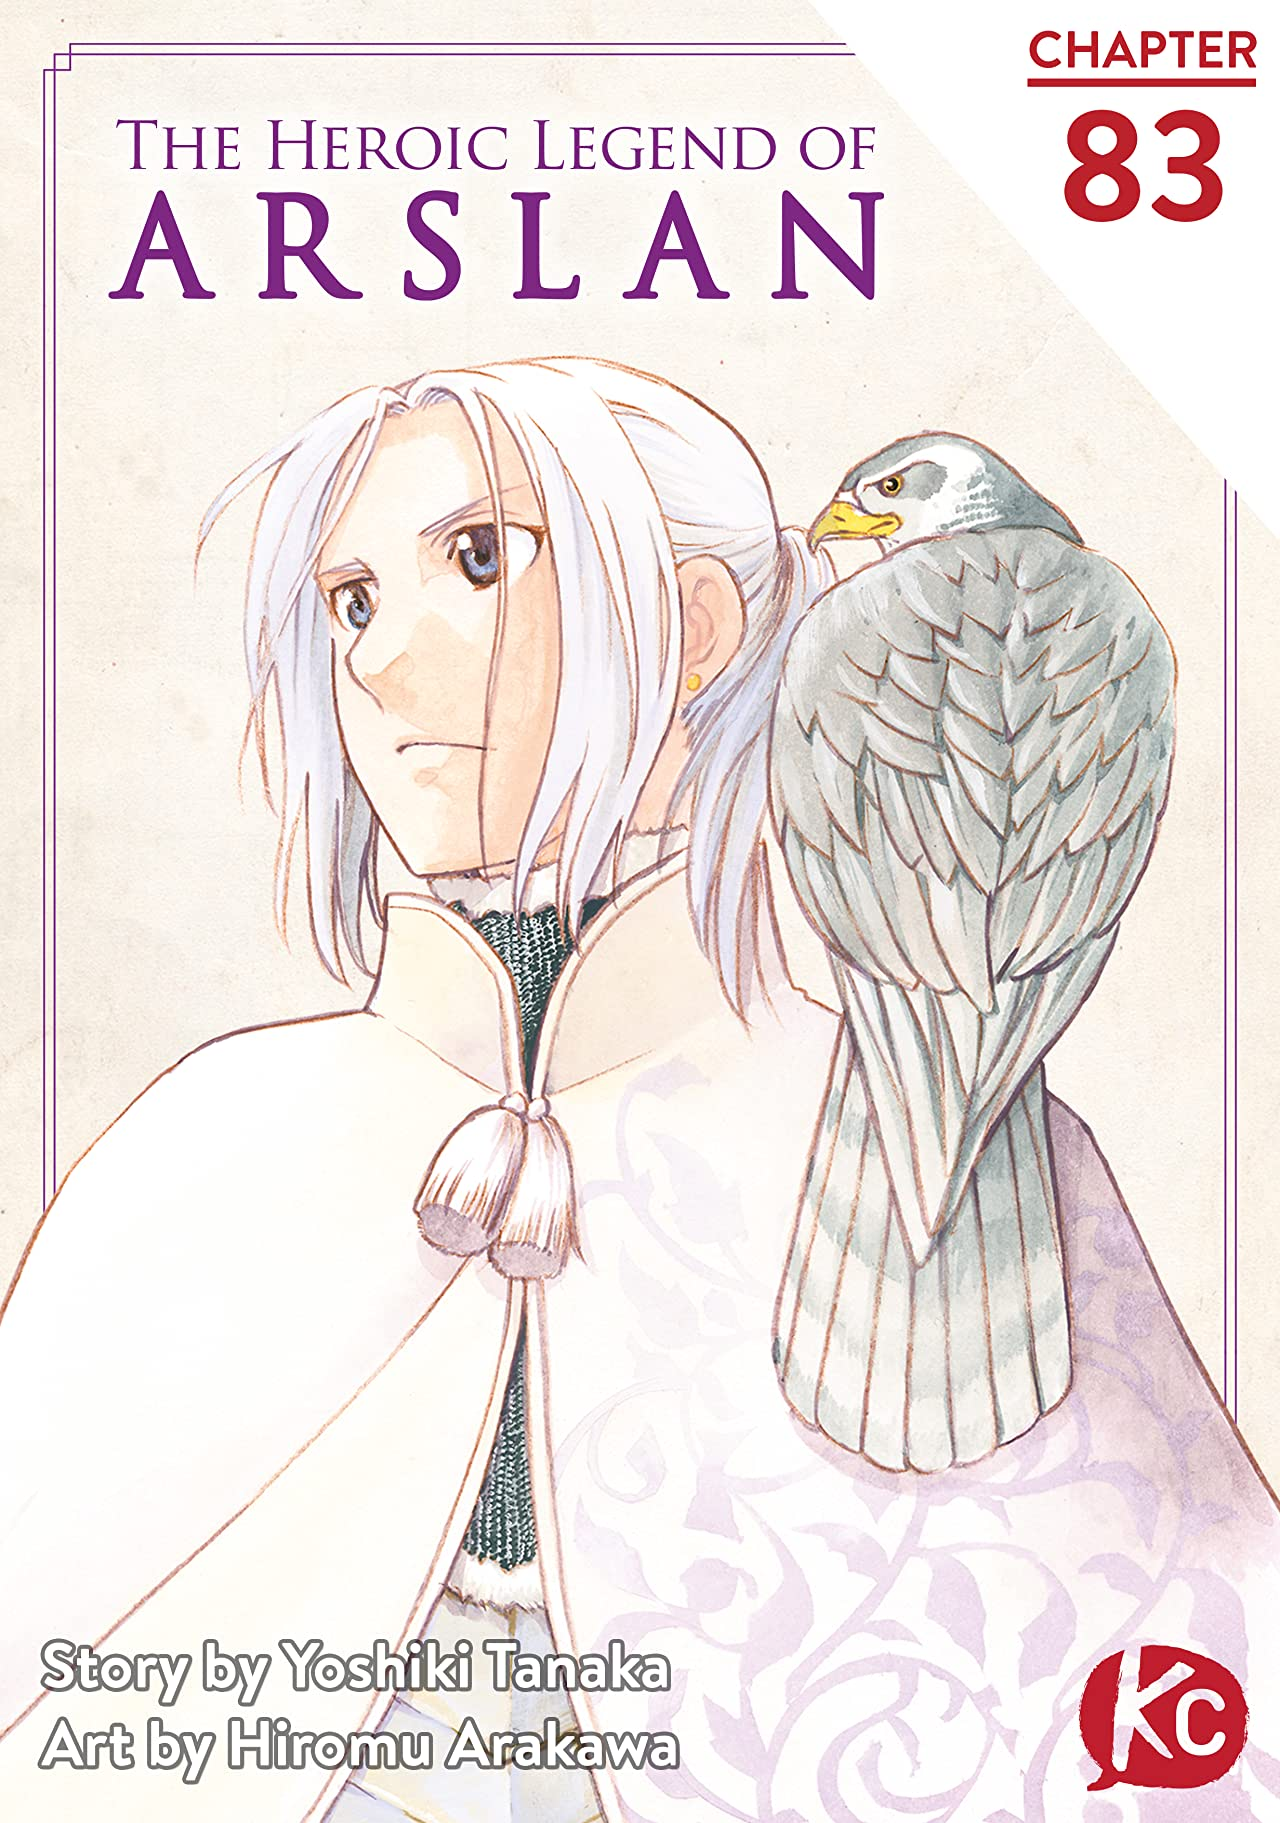 The Heroic Legend of Arslan #83